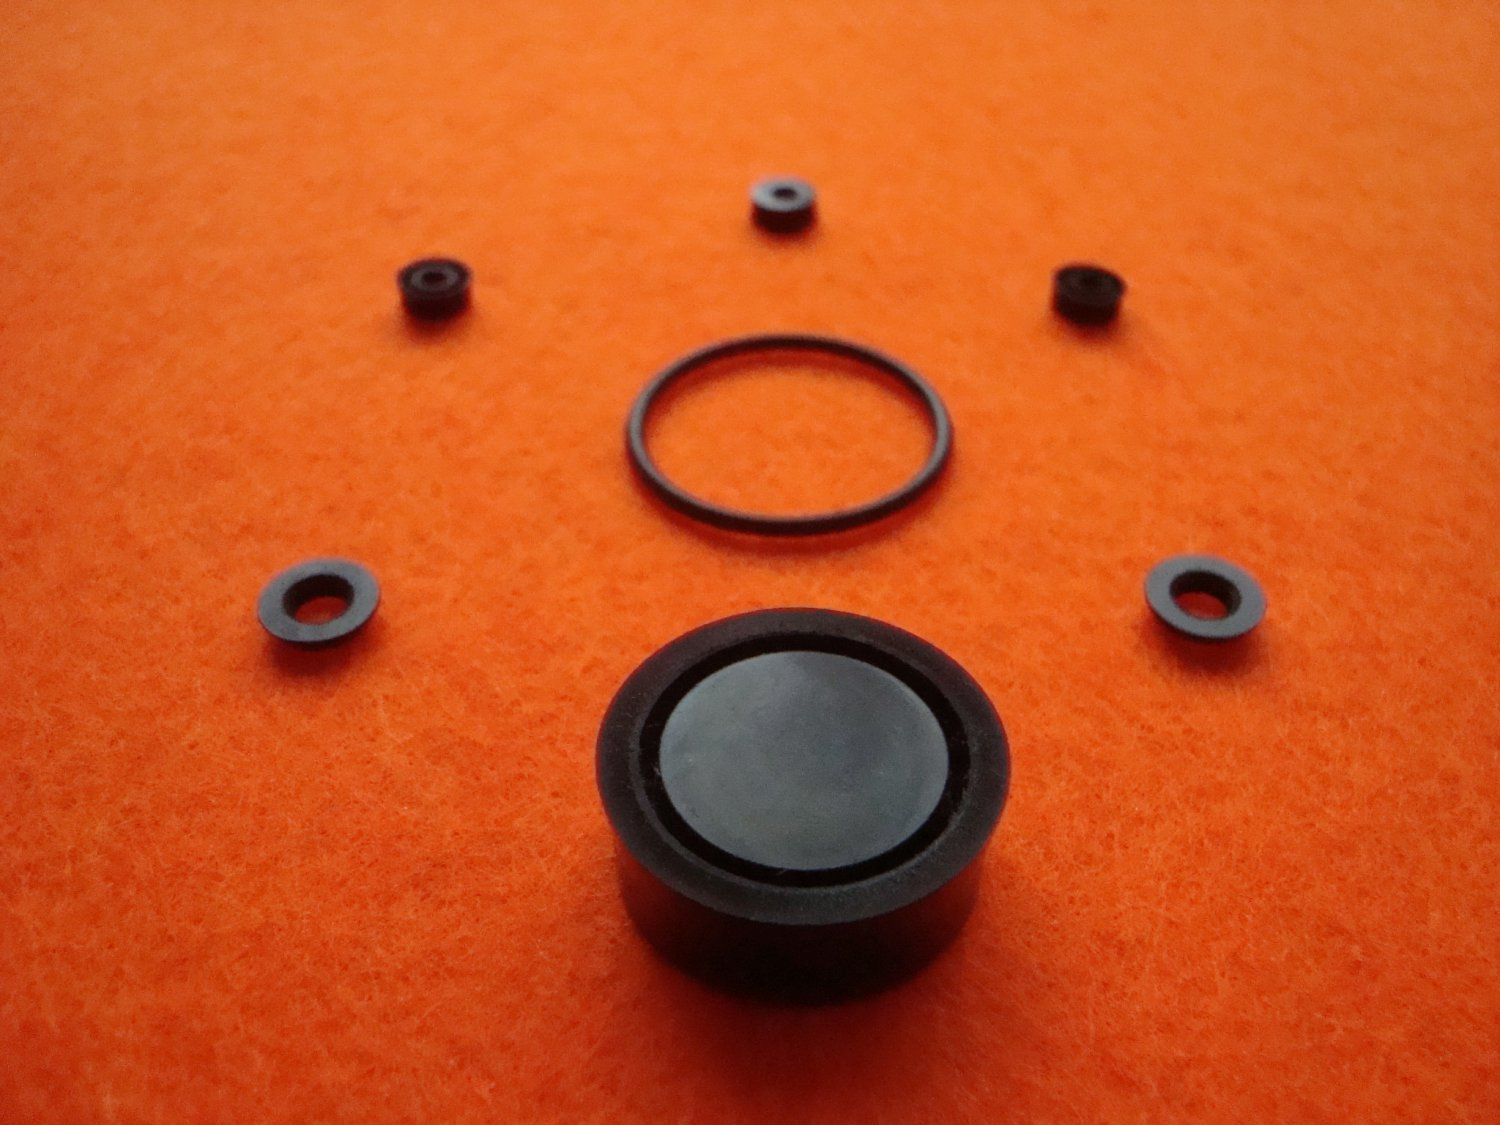 Seals MP-46, IZH-46 repair kit with sealing o-ring, locking element, piston cup, parts made to order